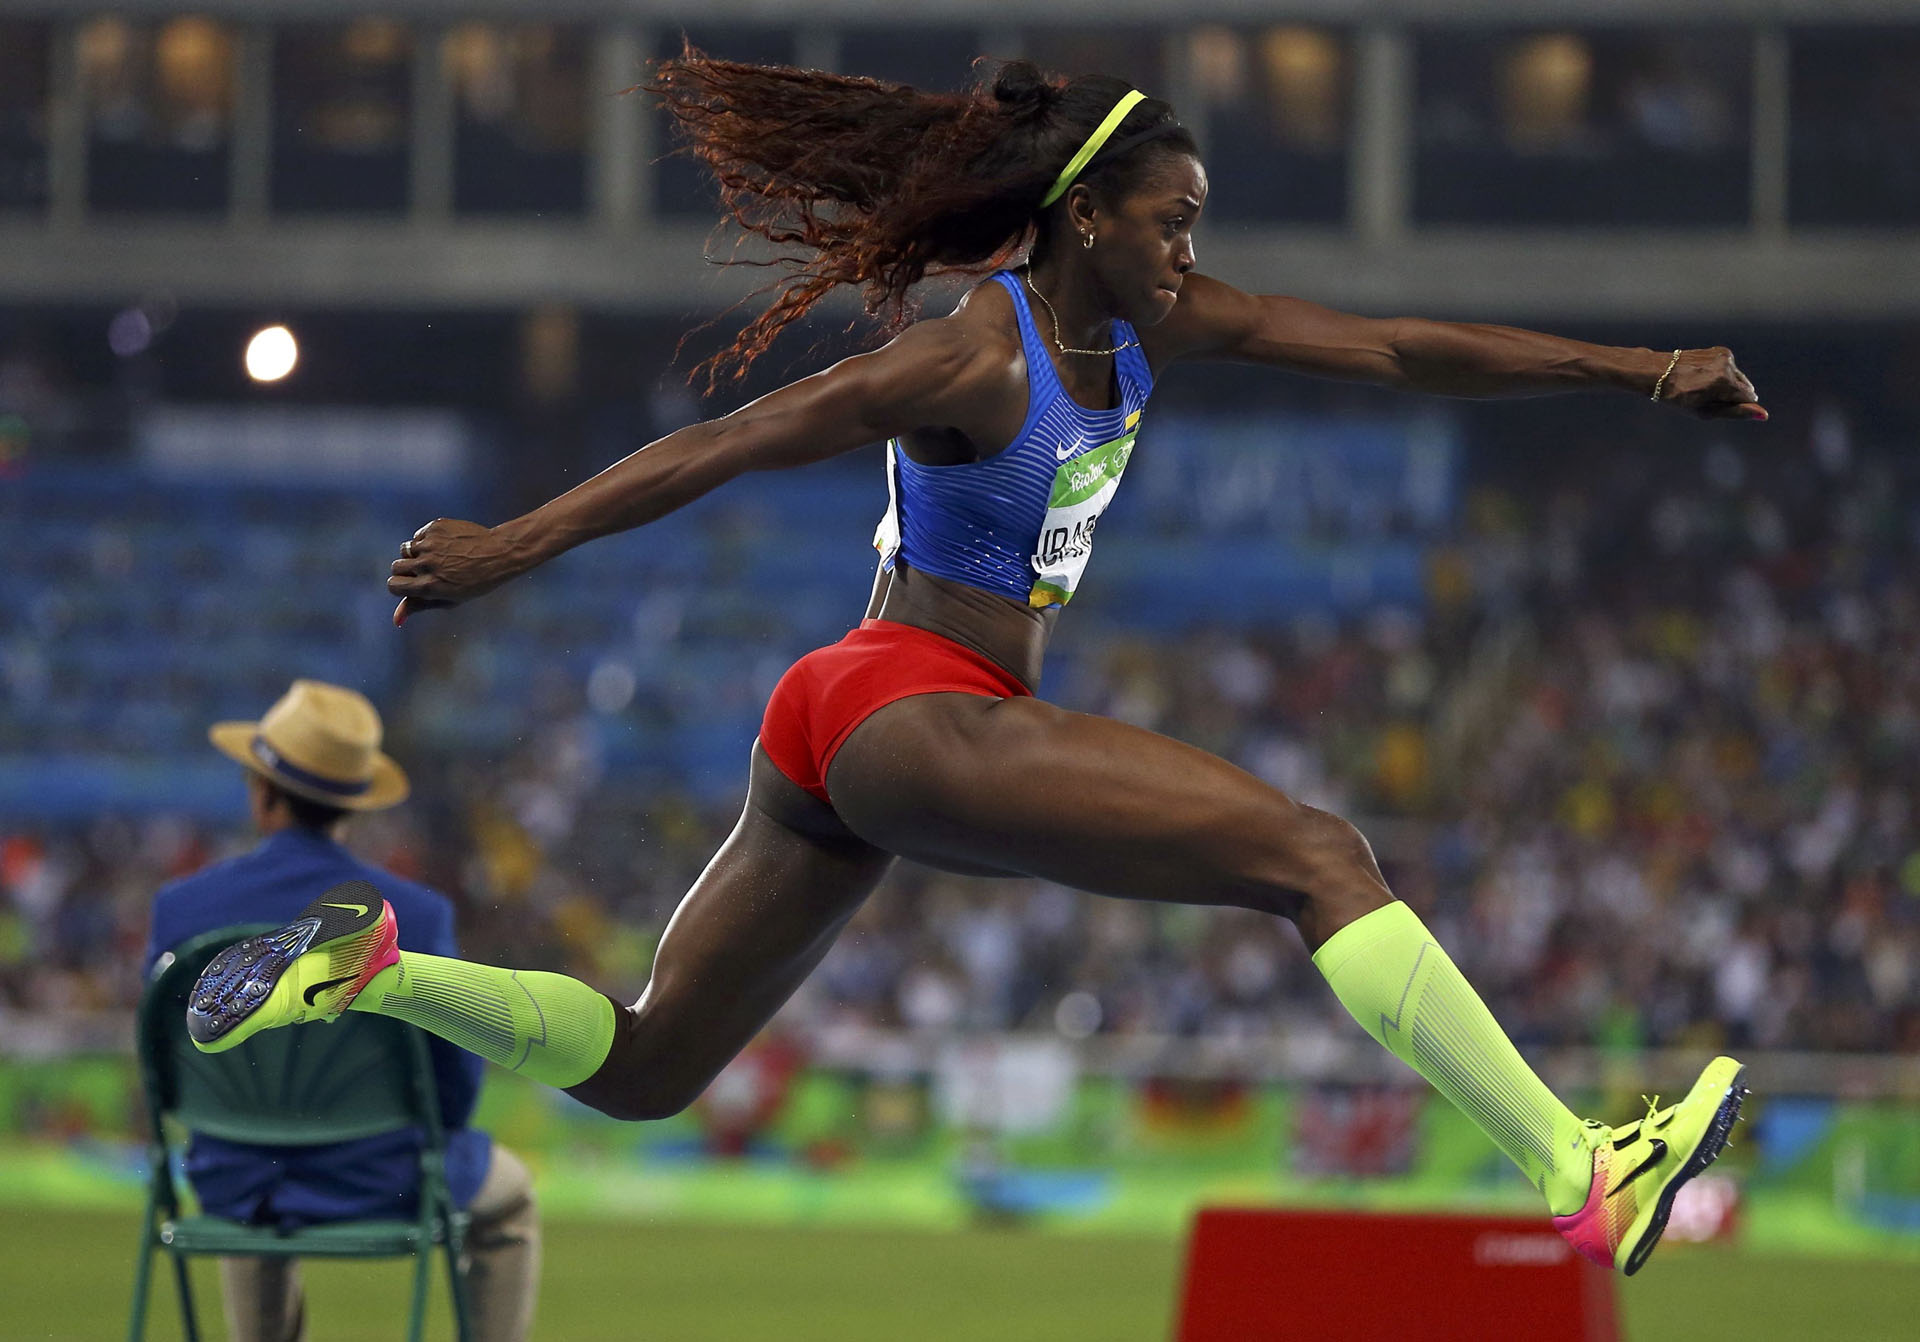 2016 Rio Olympics - Athletics - Final - Women's Triple Jump Final - Olympic Stadium - Rio de Janeiro, Brazil - 14/08/2016. Caterine Ibarguen (COL) of Colombia competes. REUTERS/Ivan Alvarado FOR EDITORIAL USE ONLY. NOT FOR SALE FOR MARKETING OR ADVERTISING CAMPAIGNS.